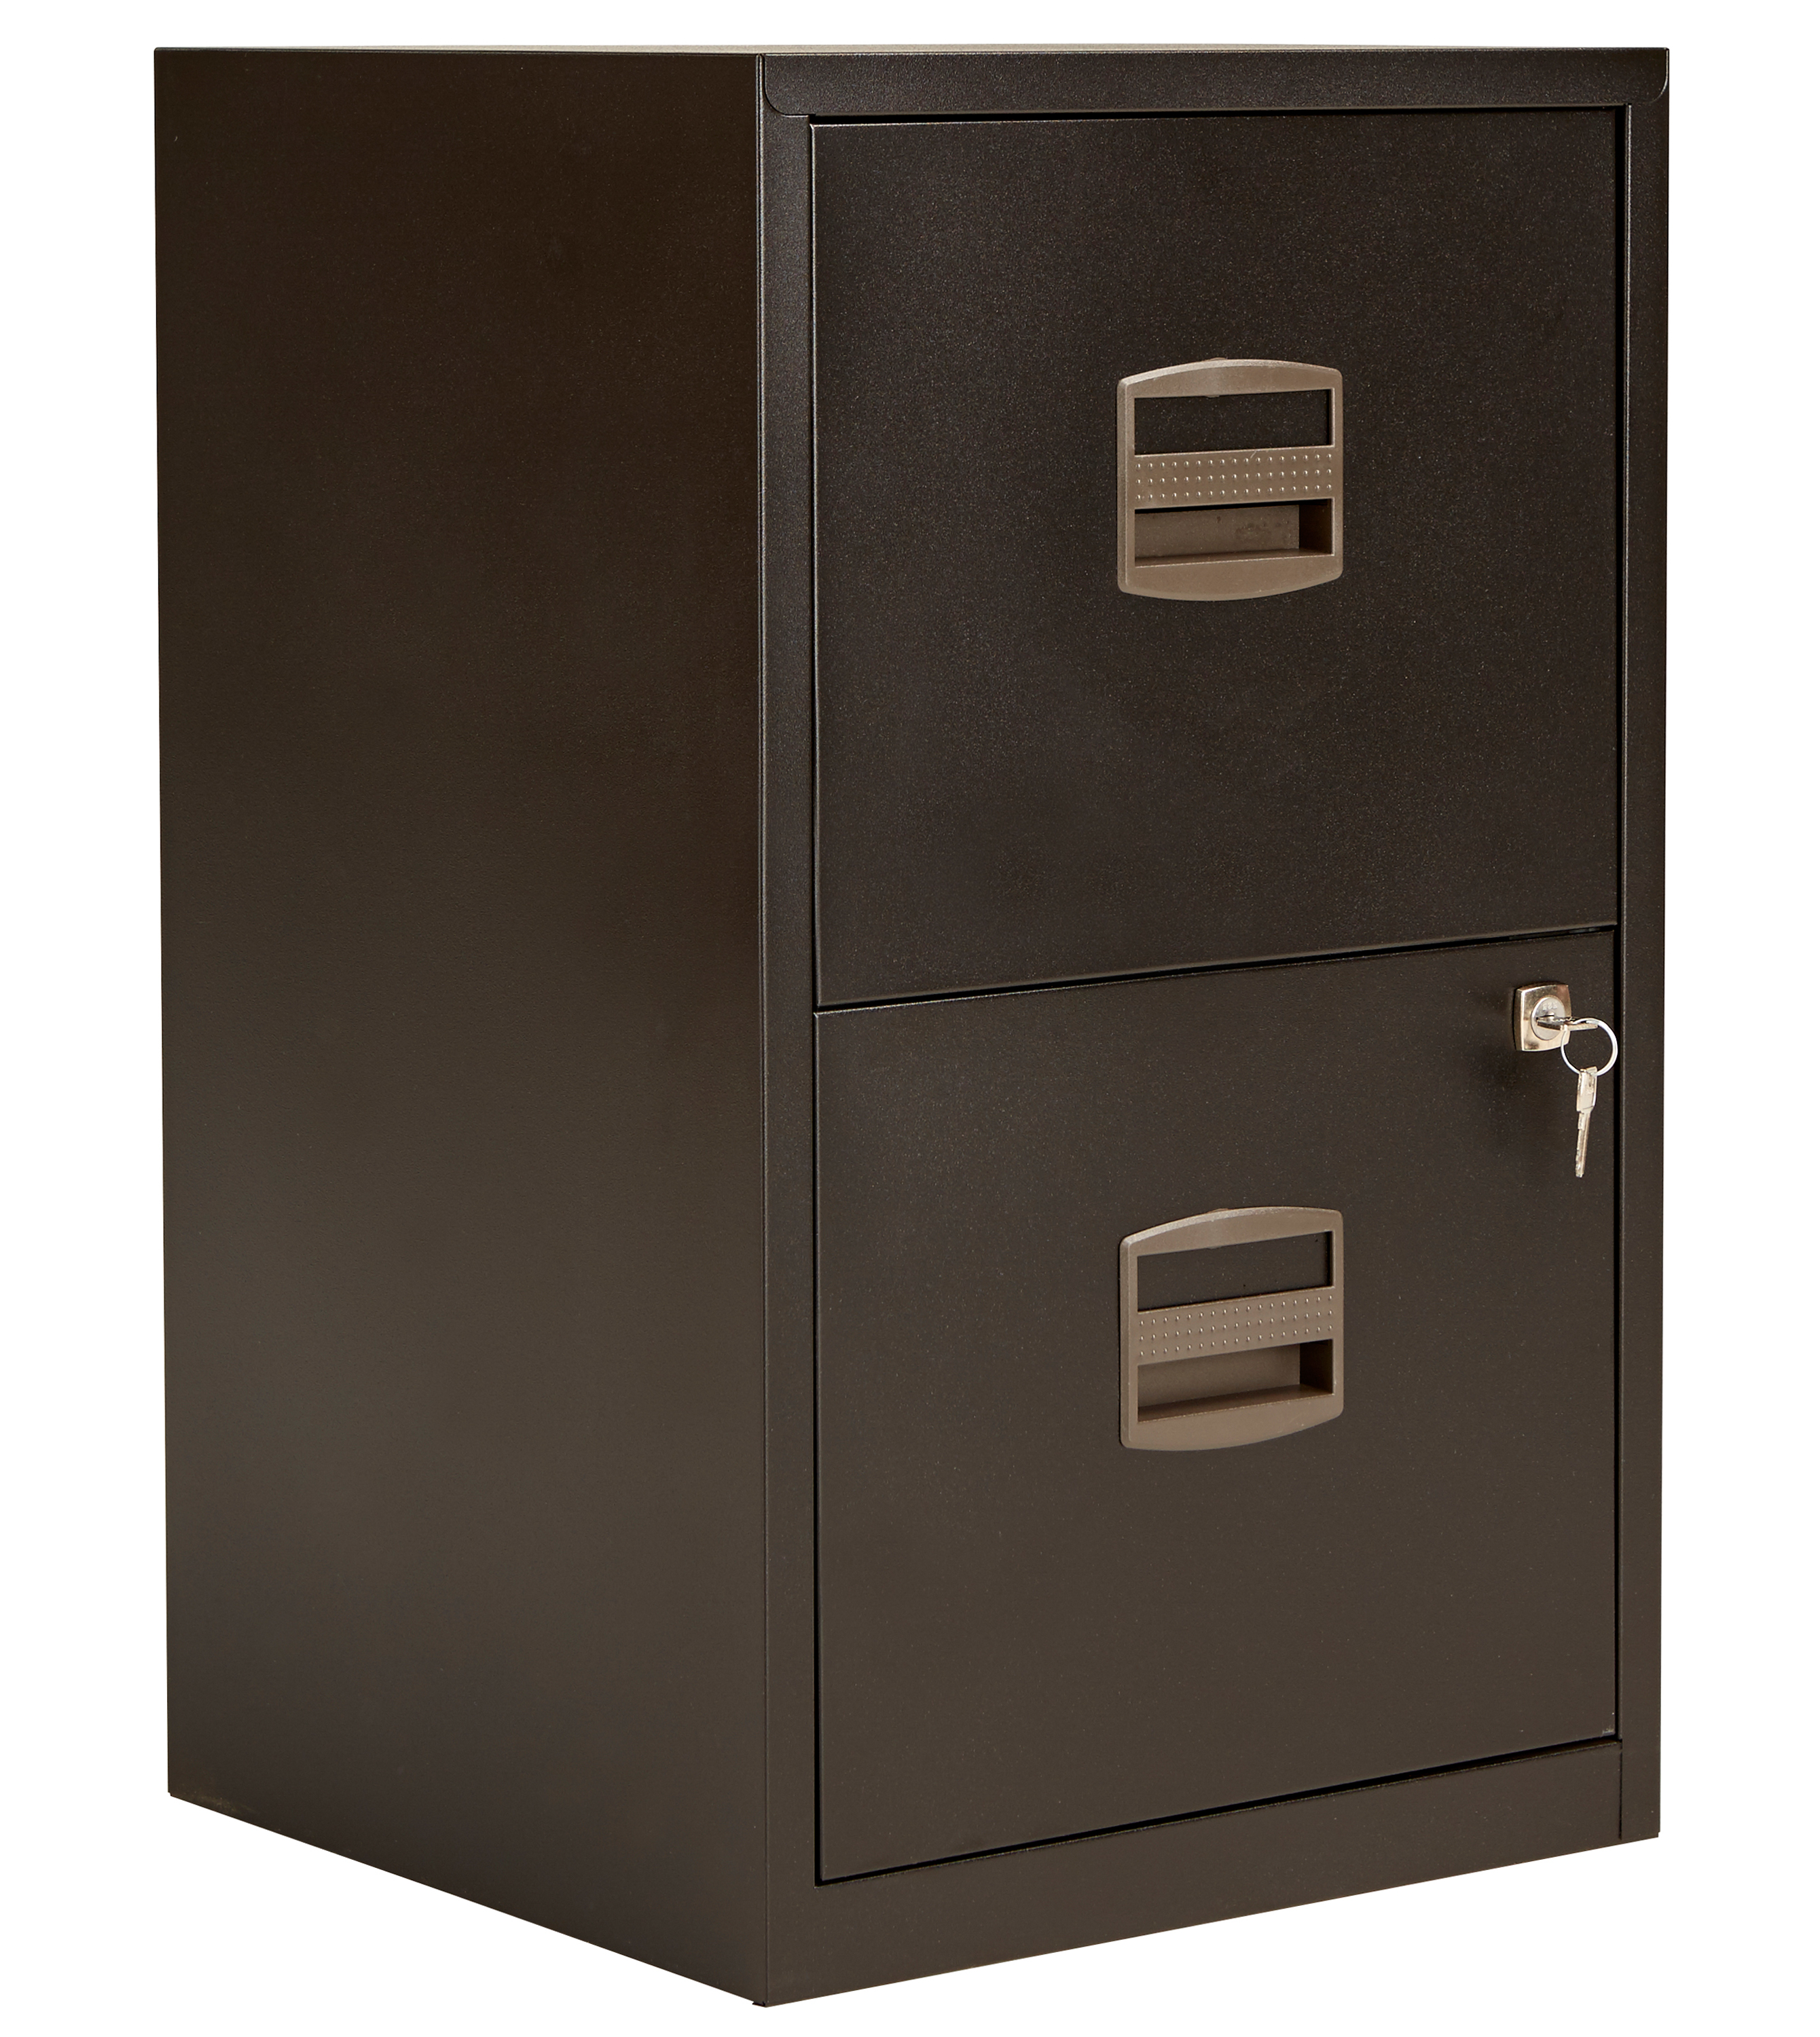 Bisley 2 Drawer A4 Home Filing Cabinet - Black